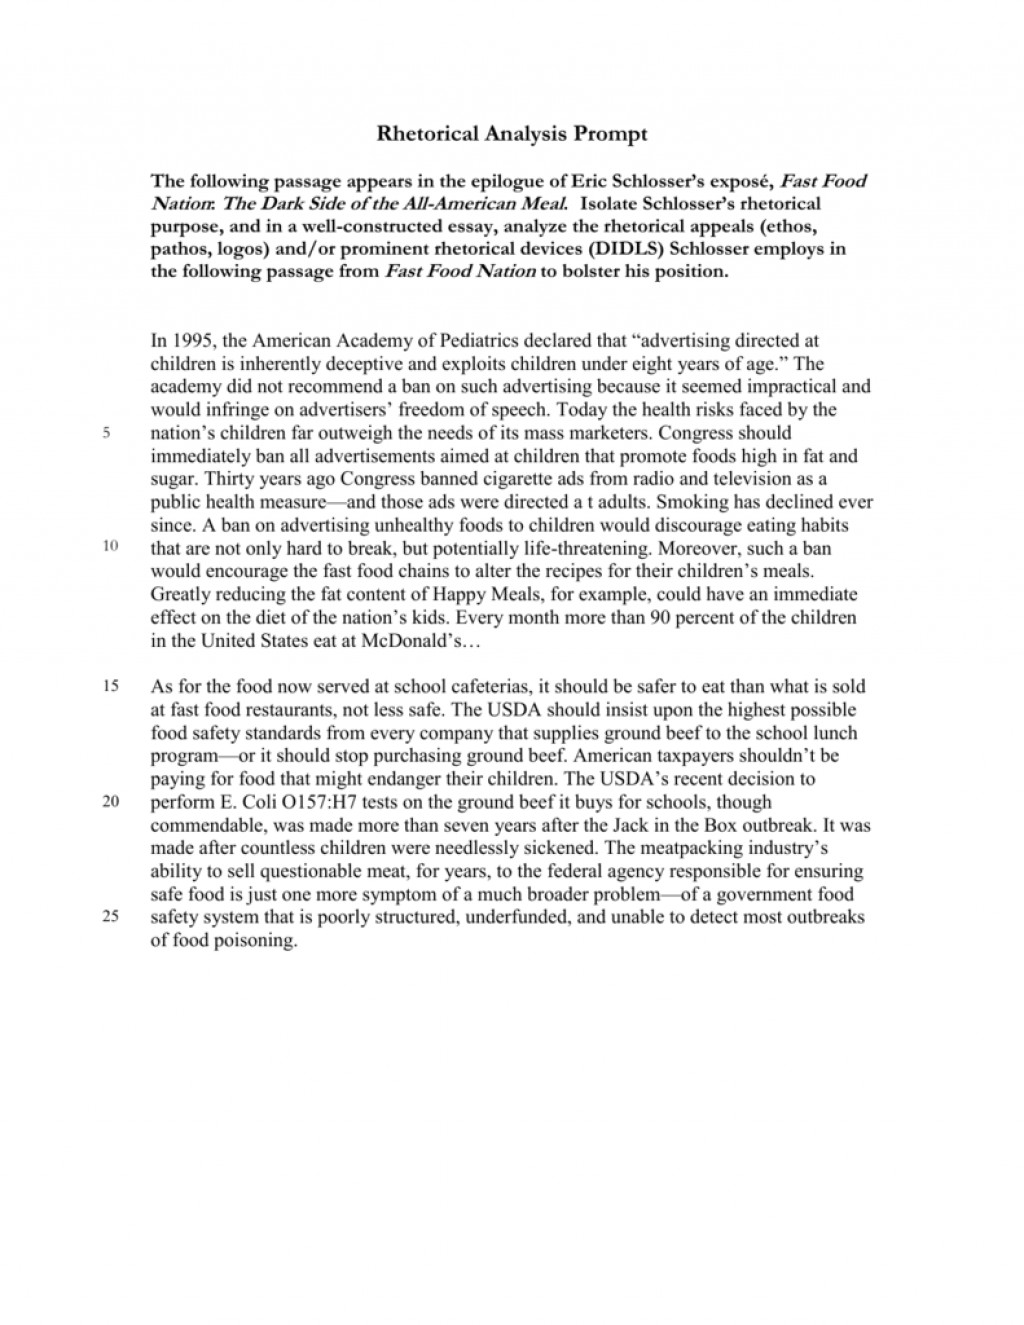 018 Fast Food Essay Example 008033612 1 Stunning Research Paper Argumentative Topics Large